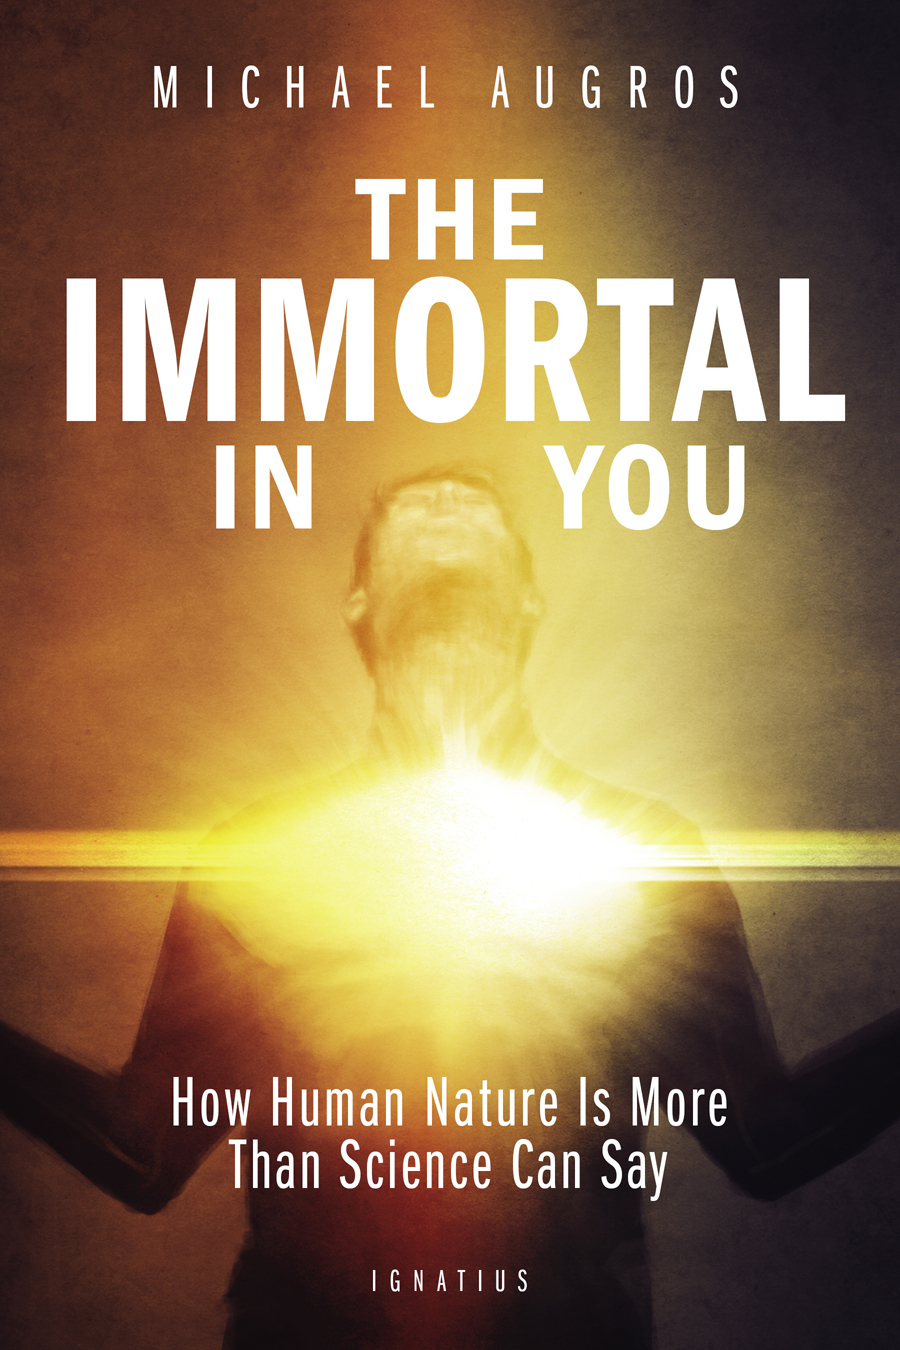 The Immortal in You